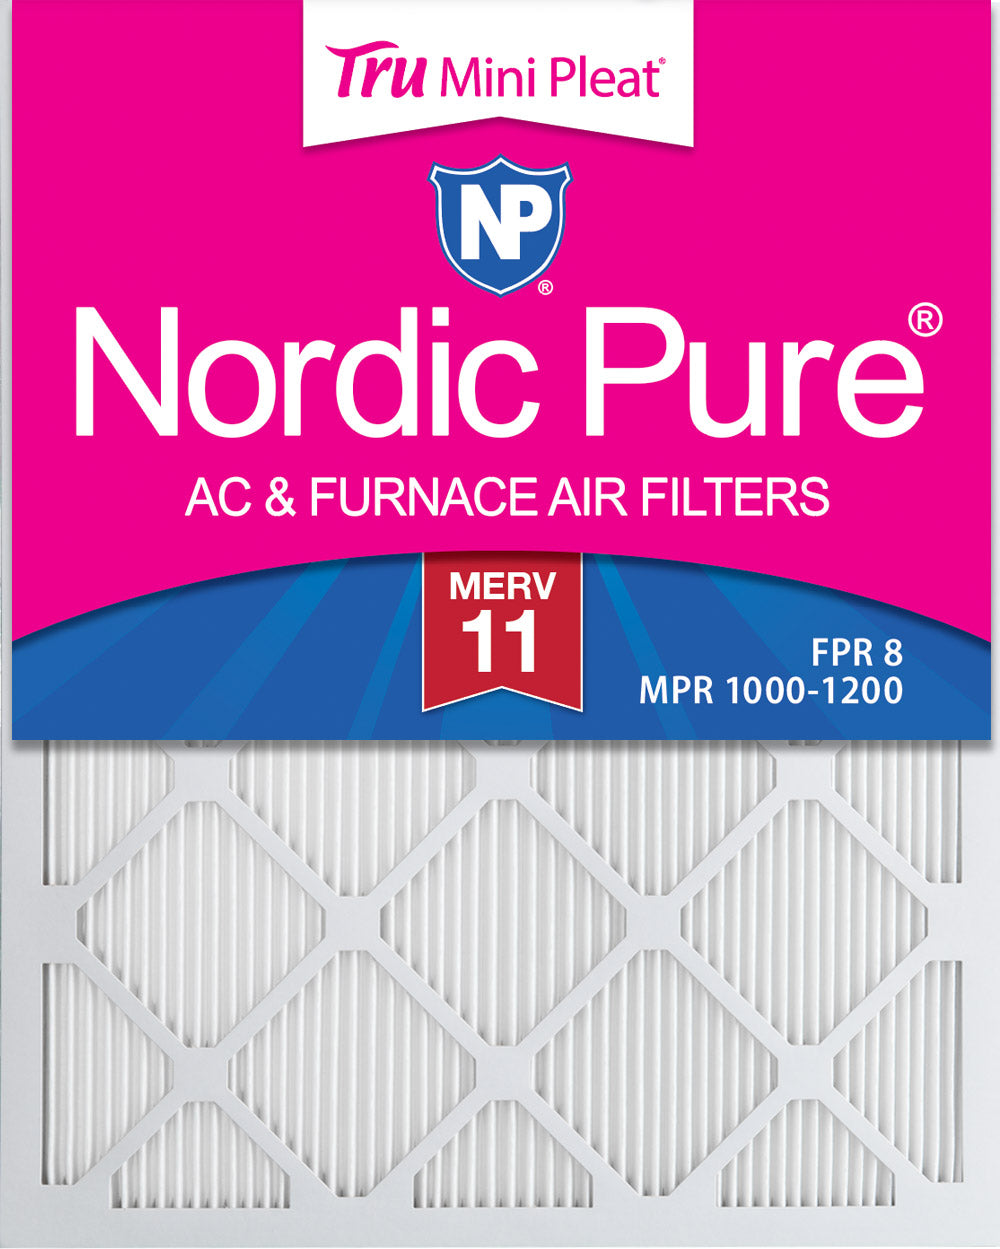 14x24x1 Tru Mini Pleat MERV 11 AC Furnace Air Filters 12 Pack